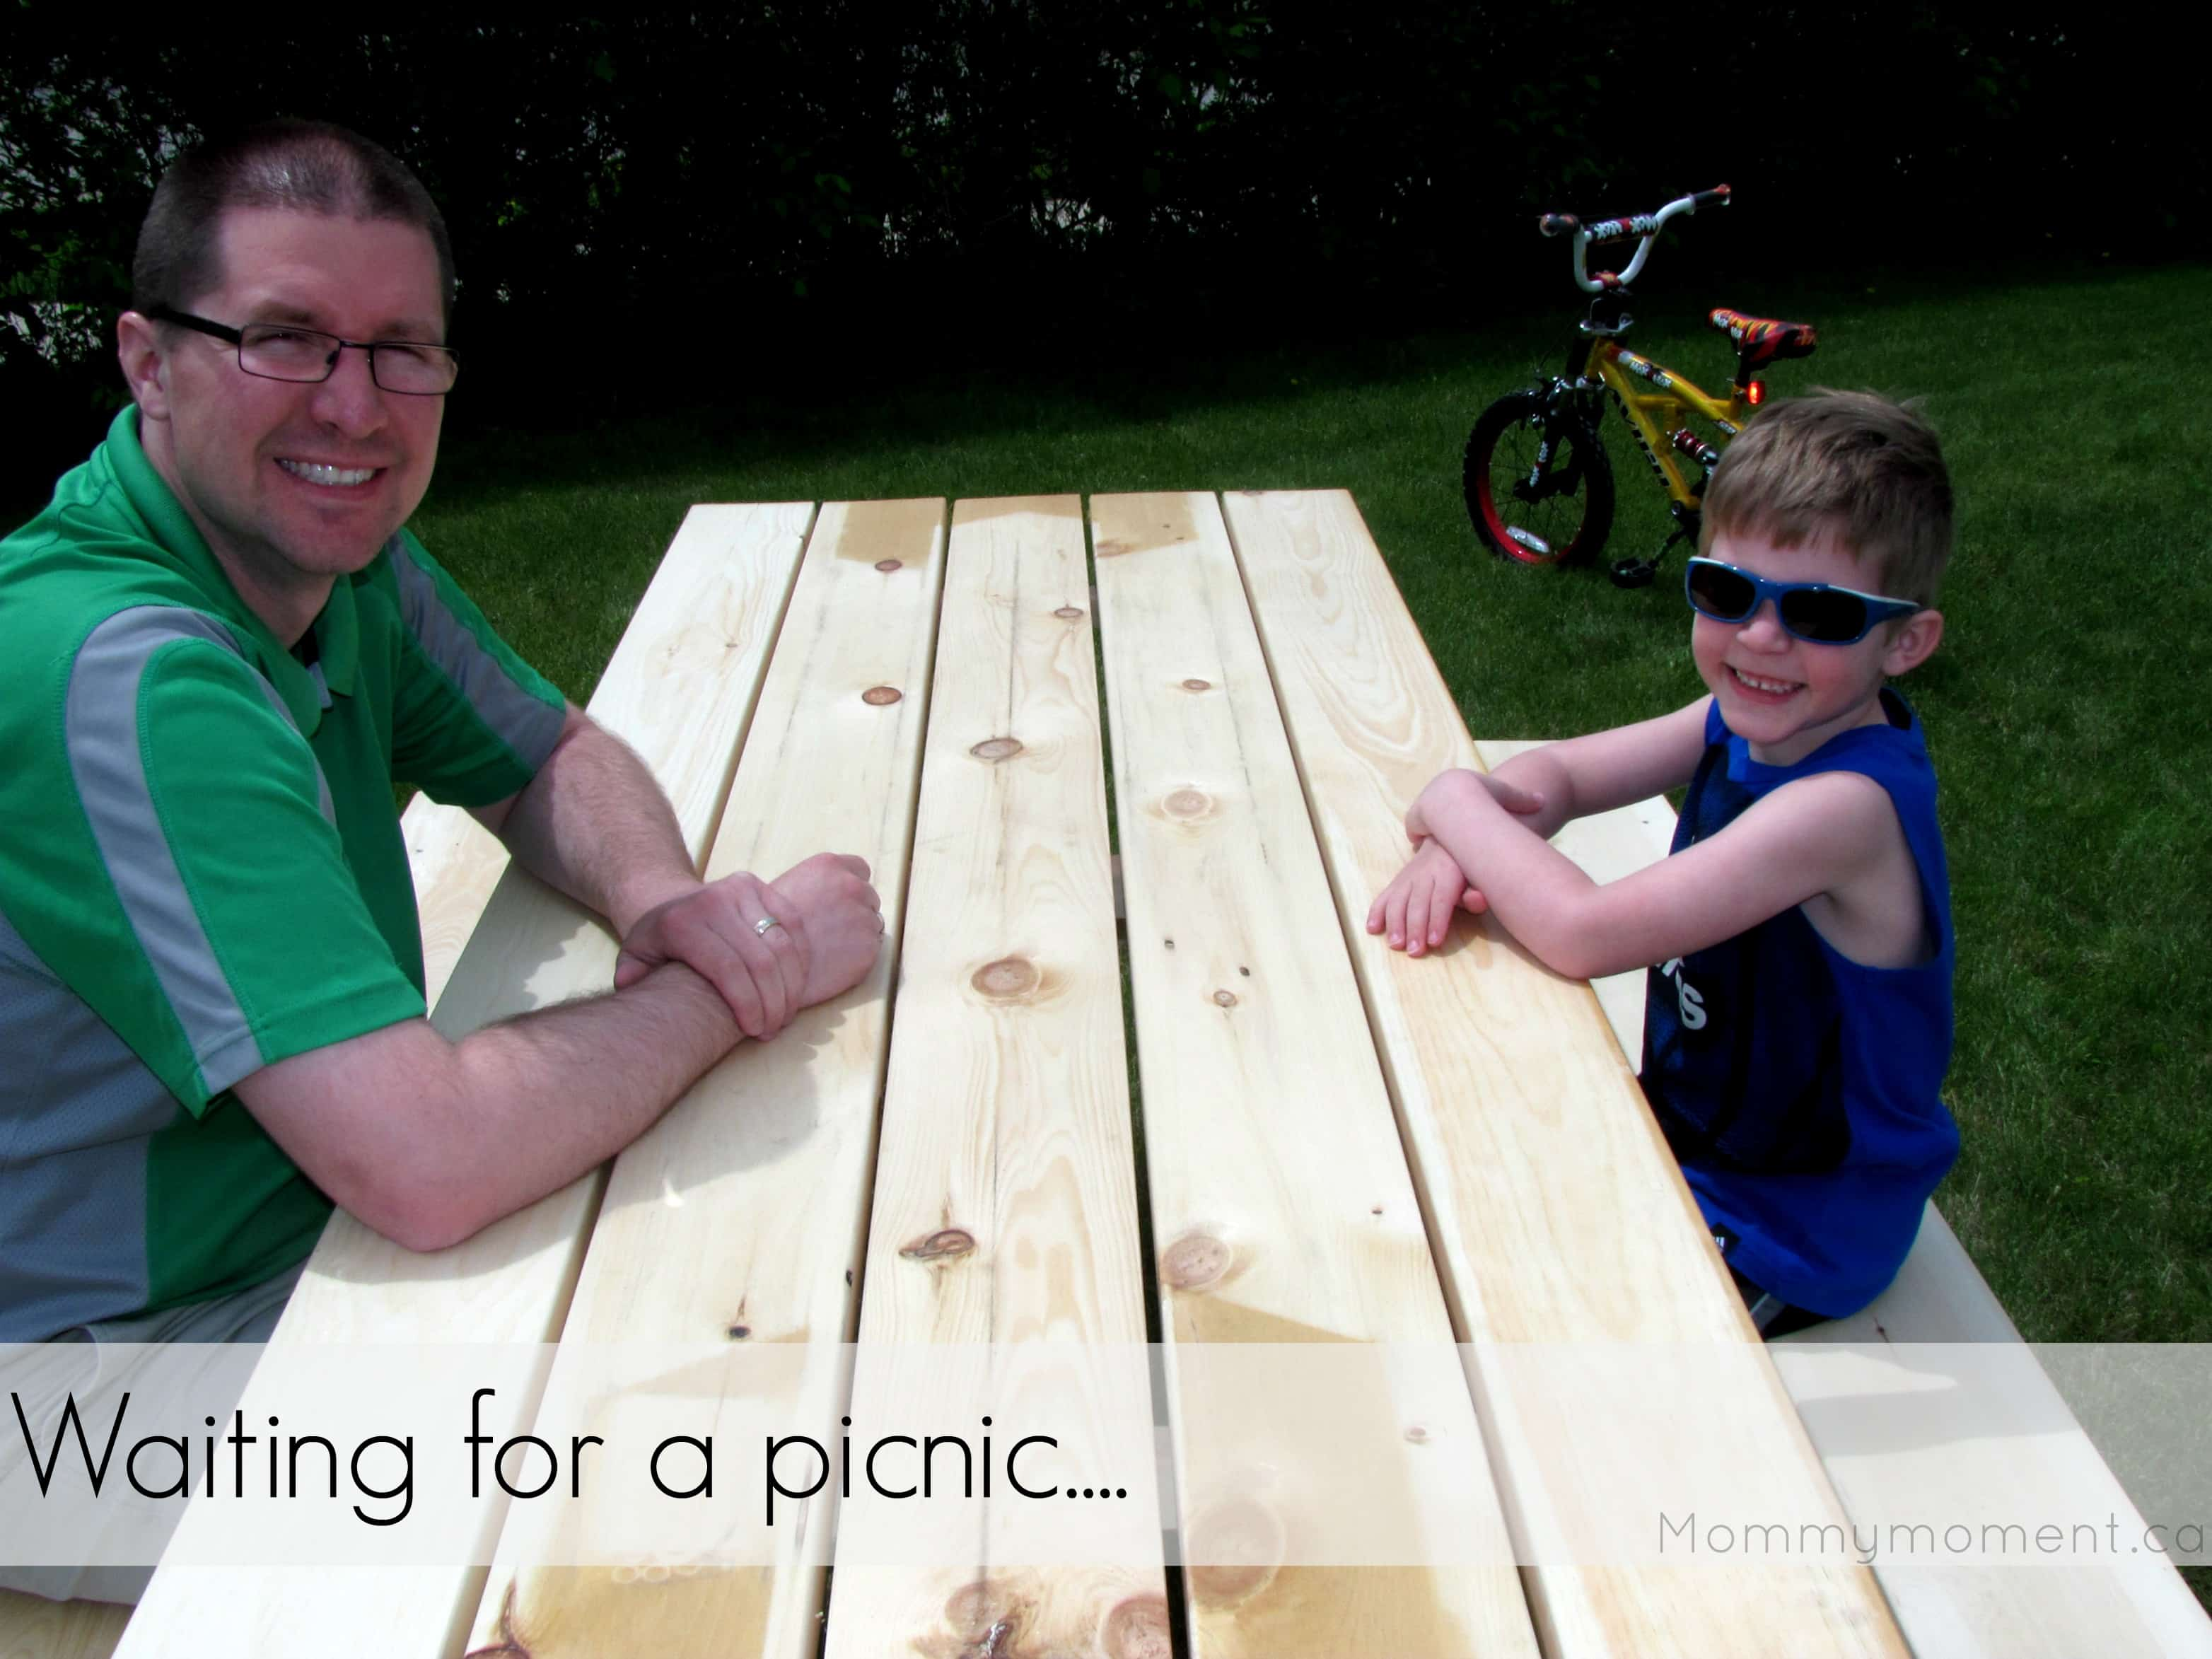 Waiting for a picnic